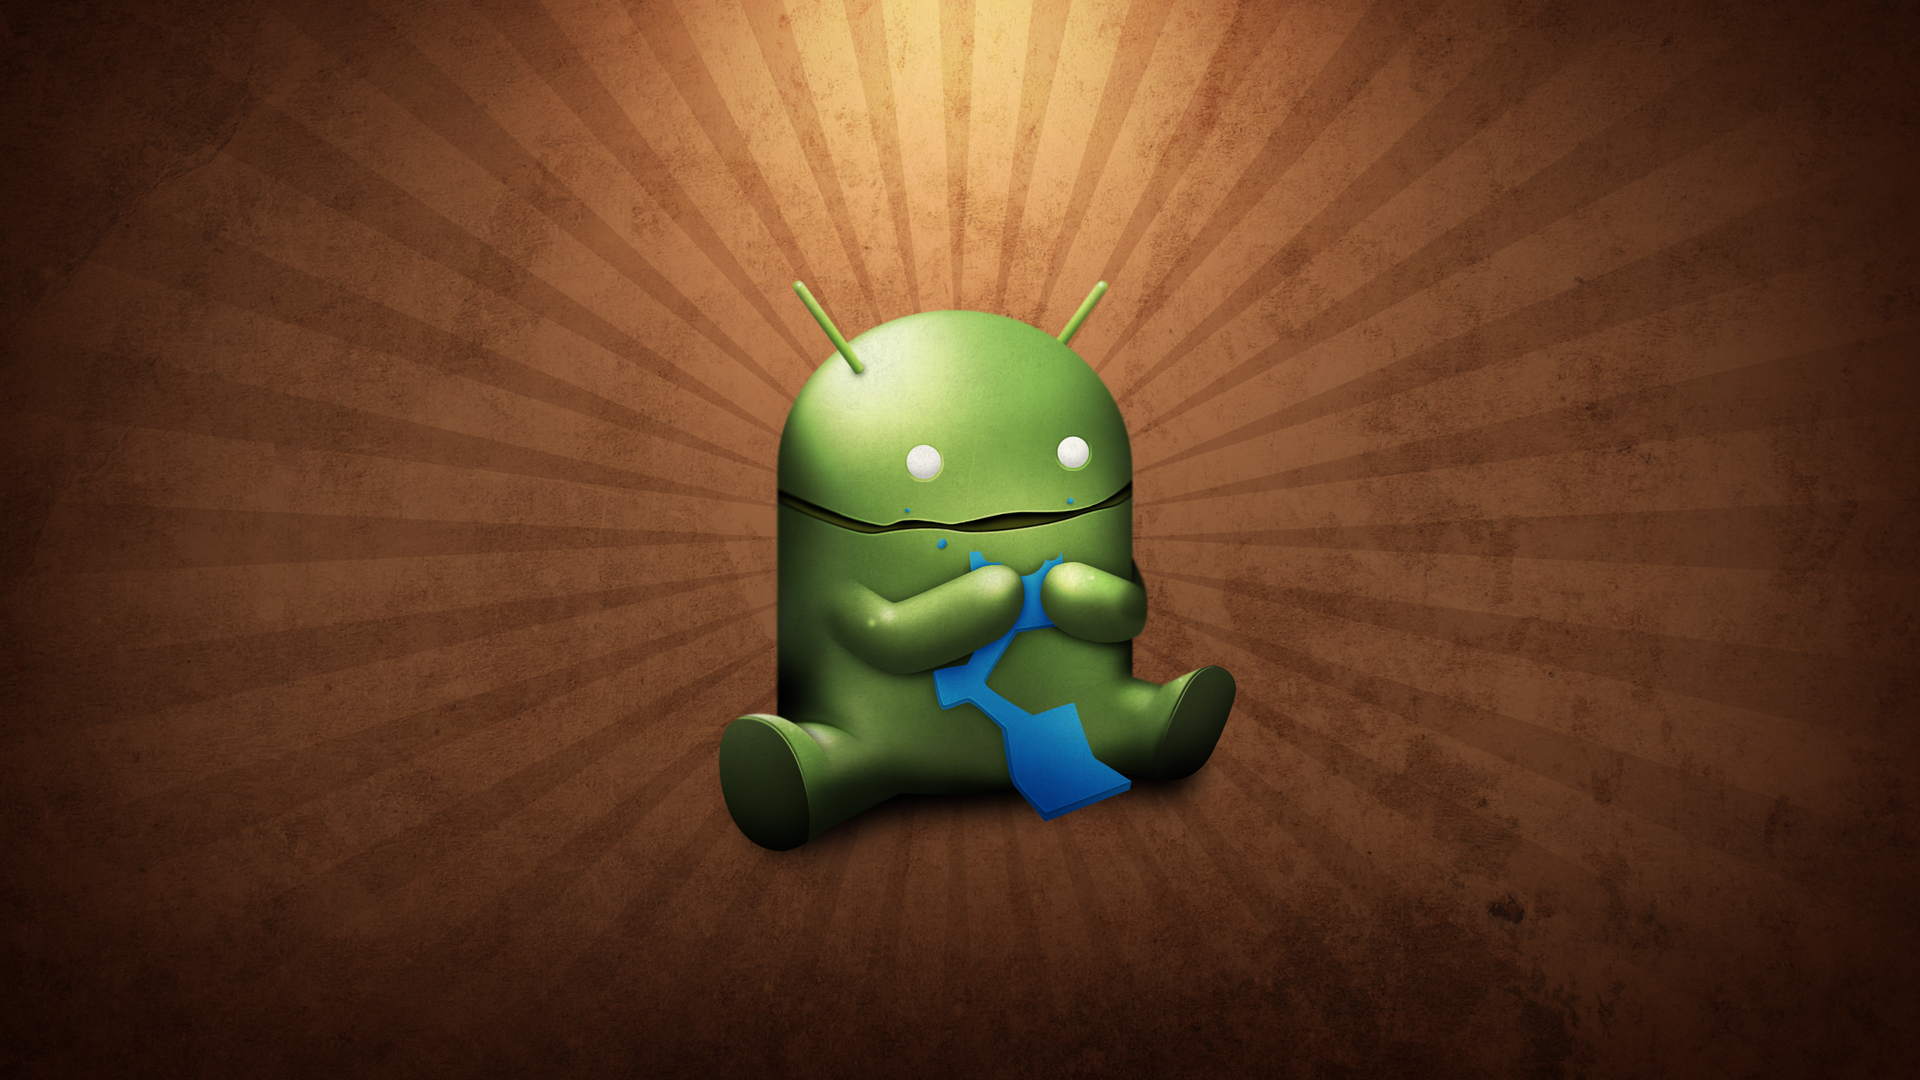 Cool Android Hd Wallpaper